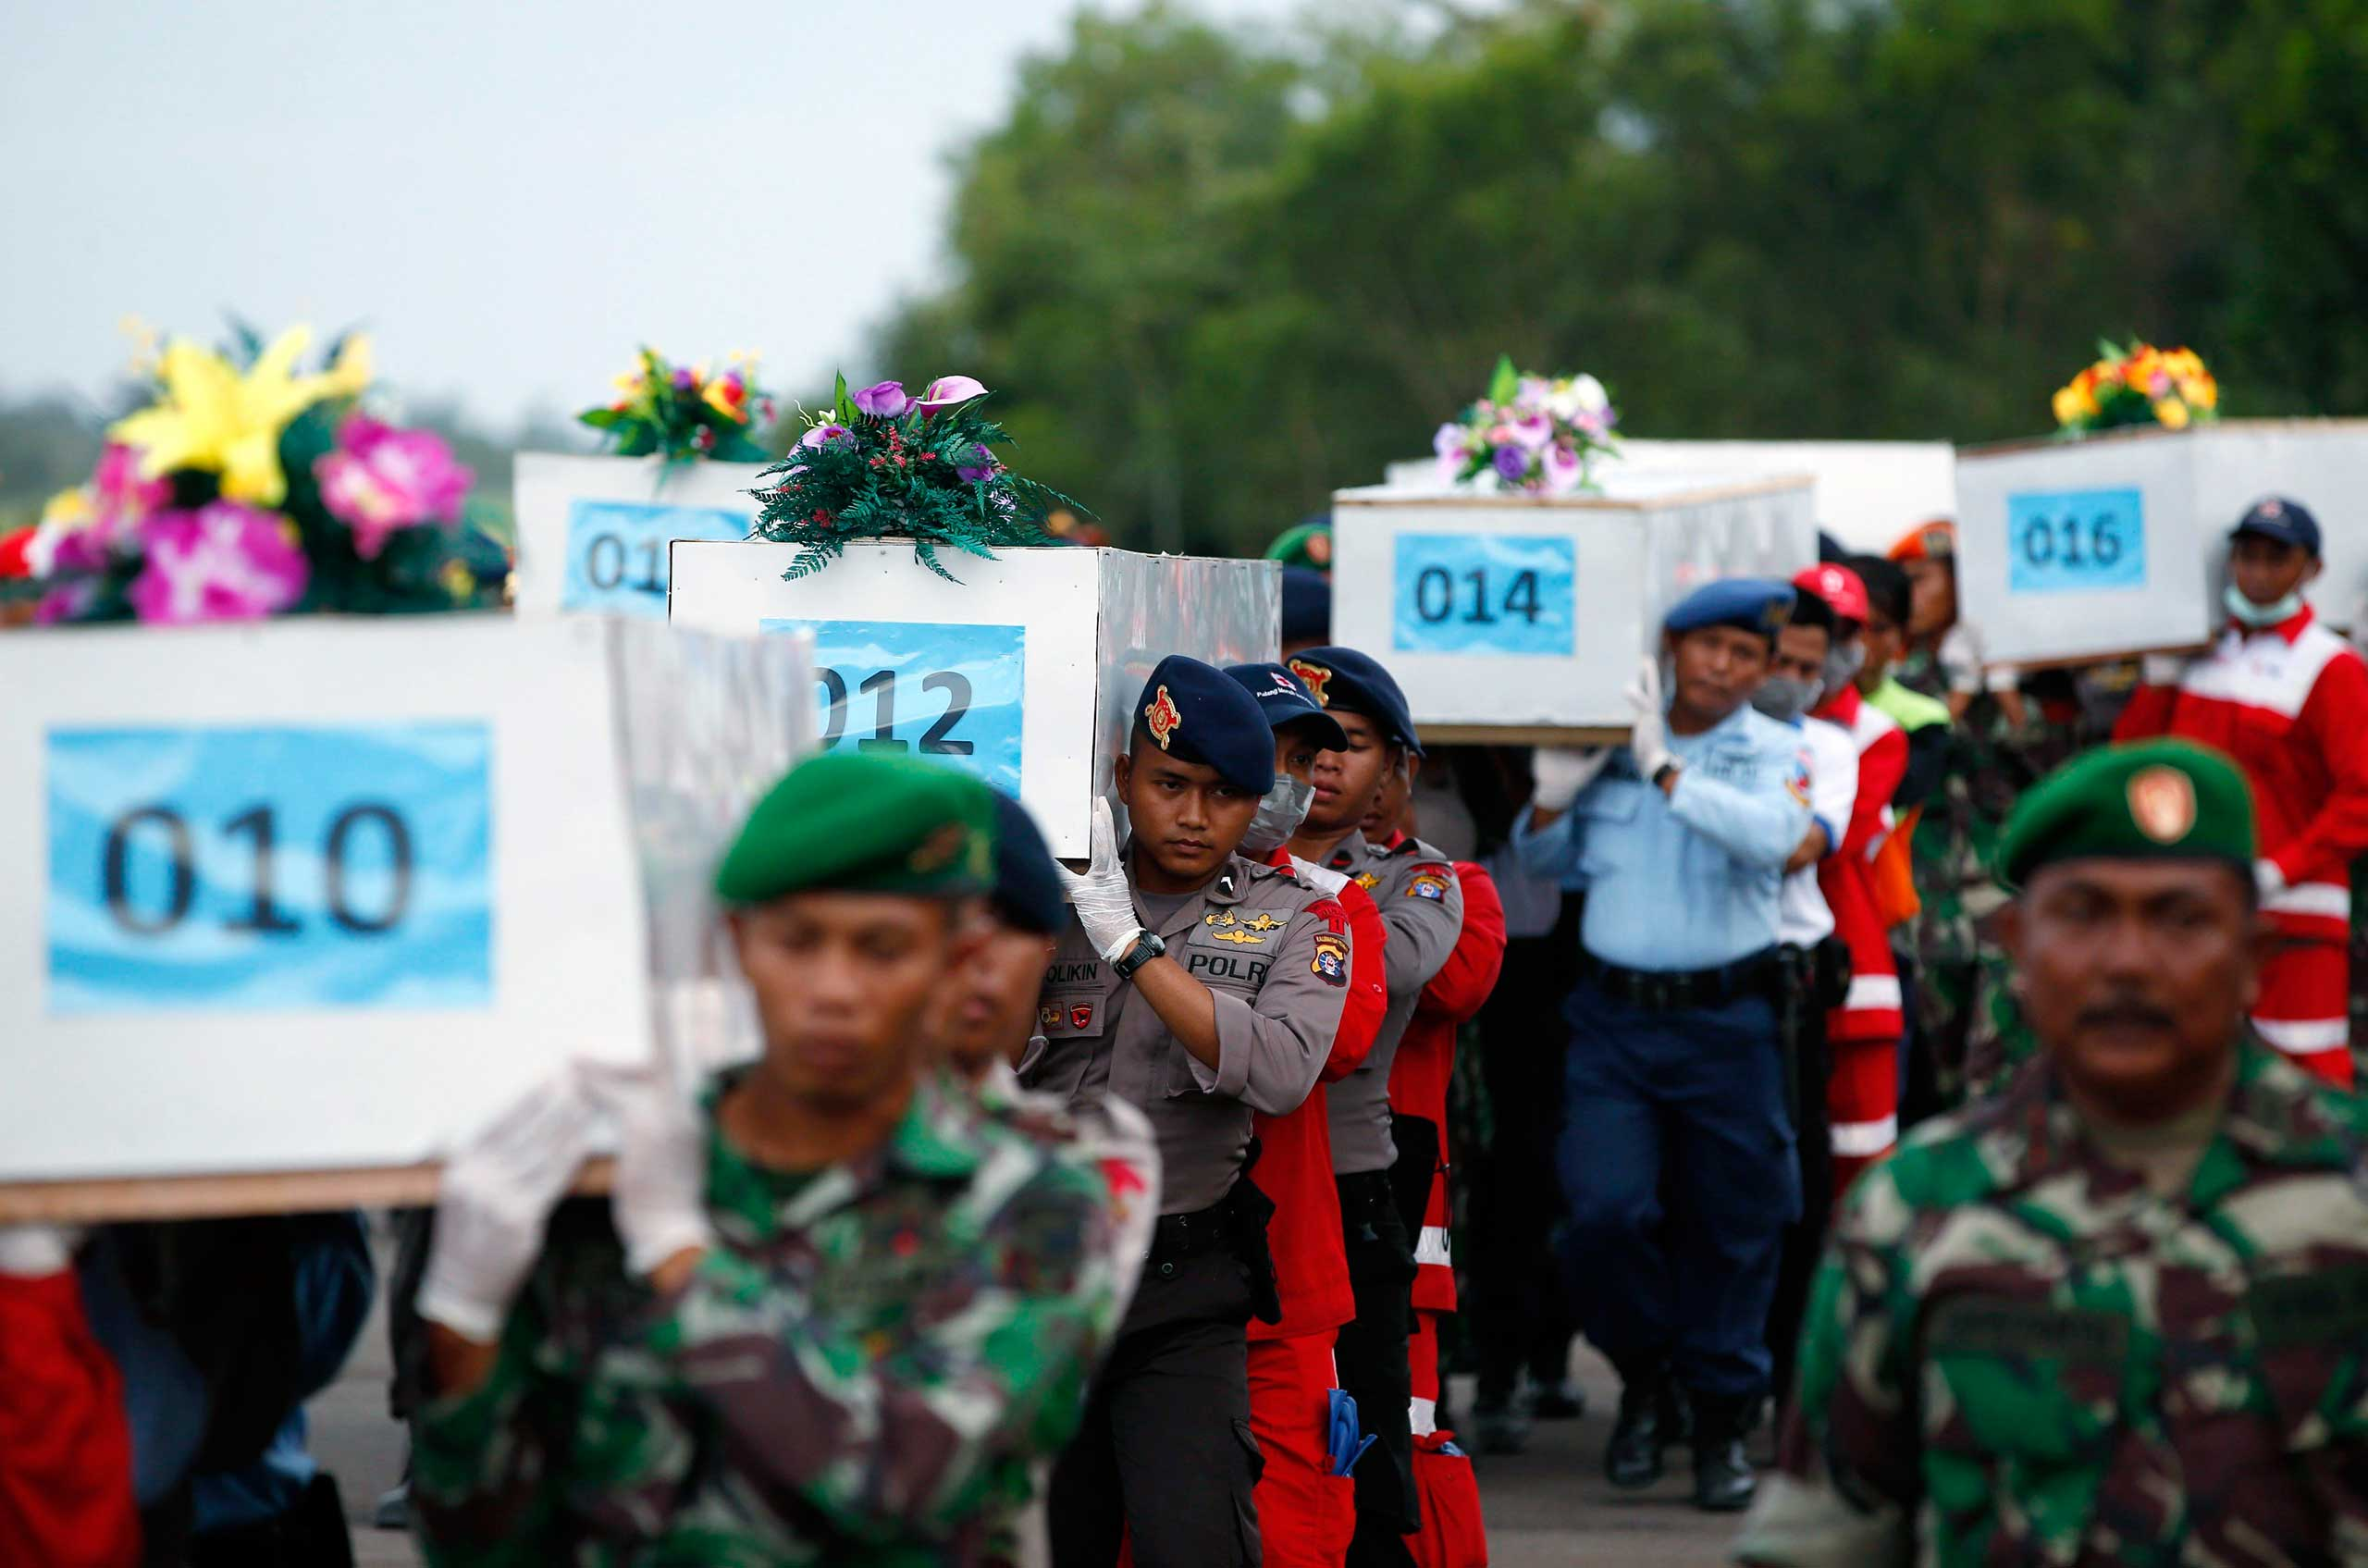 Jan. 2, 2015. Caskets containing the remains of AirAsia QZ8501 passengers recovered from the sea are carried to a military transport plane before being transported to Surabaya, Indonesia.